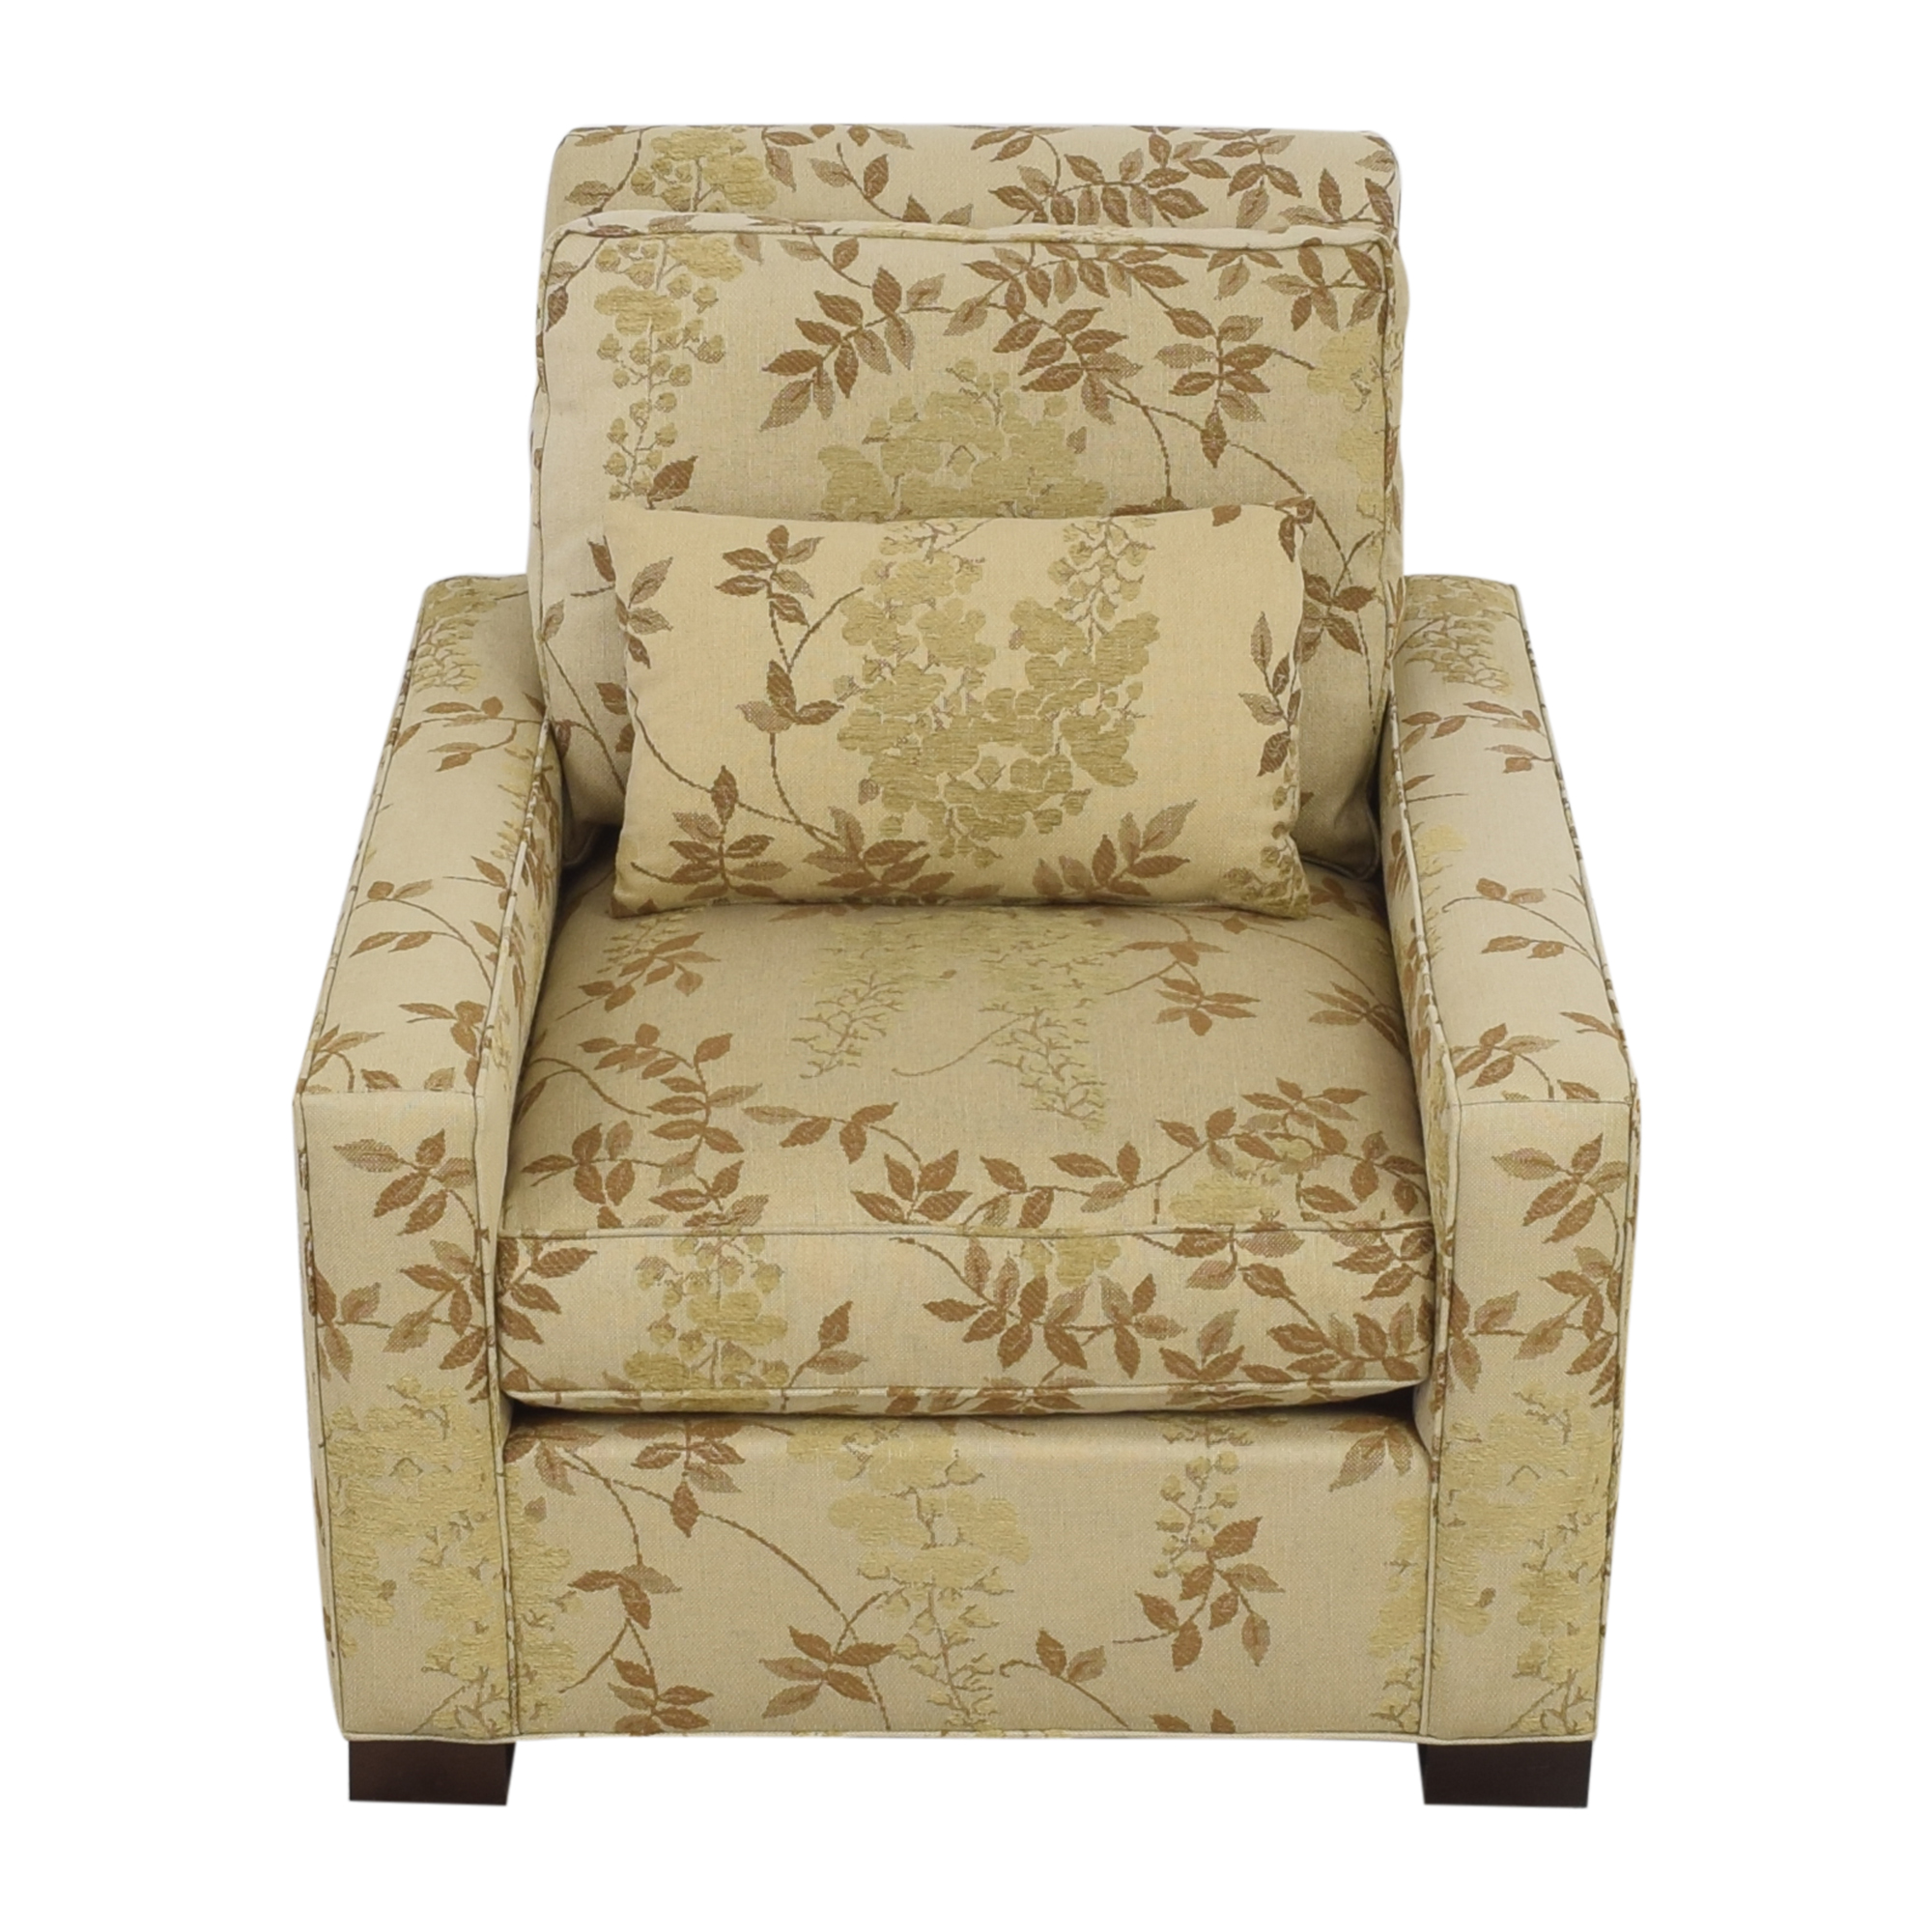 Hickory Chair Hickory Chair Upholstered Club Chair ct